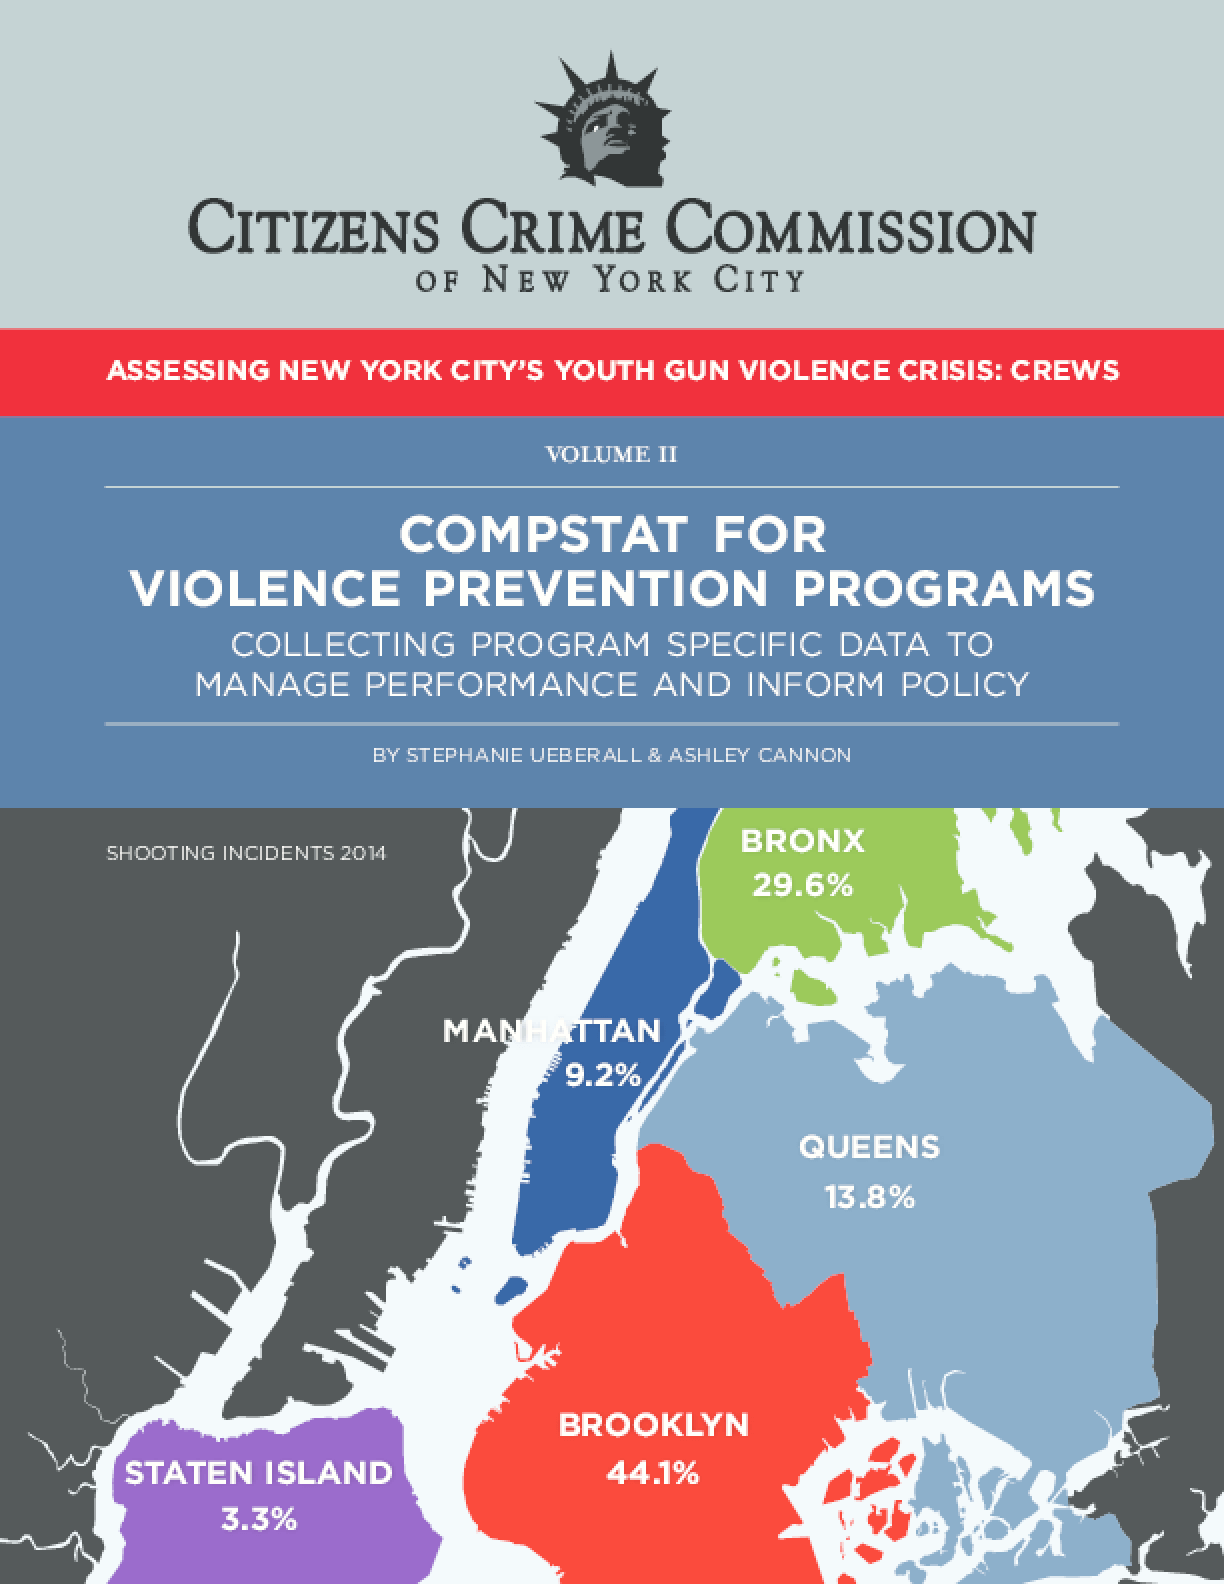 Assessing New York City's Youth Gun Violence Crisis: Crews - Volume II - CompStat for Violence Prevention Programs: Collecting Program Specific Data to Manage Performance and Inform Policy